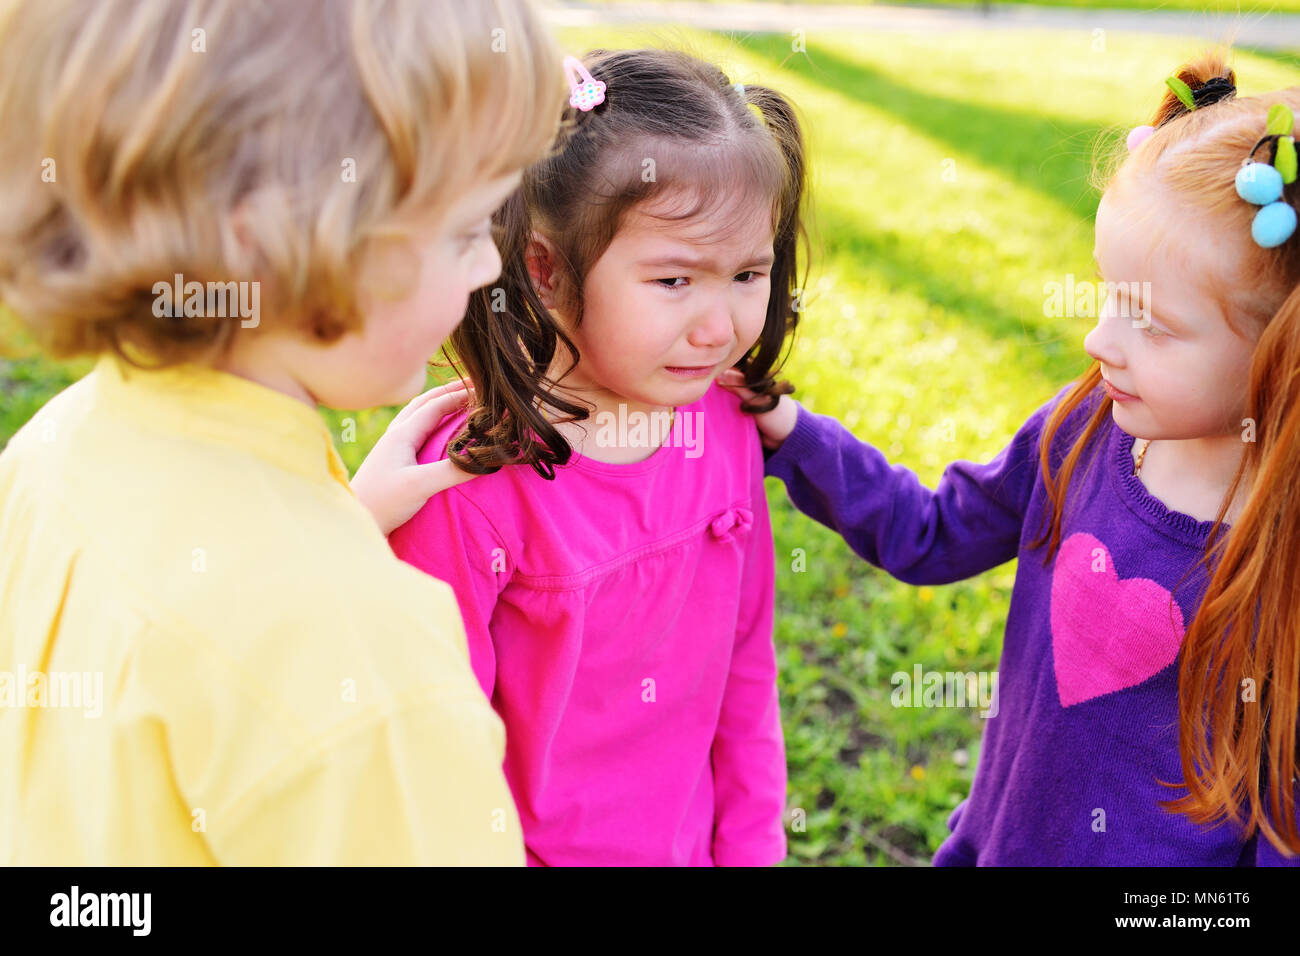 children feel sorry for a weeping little girl. - Stock Image